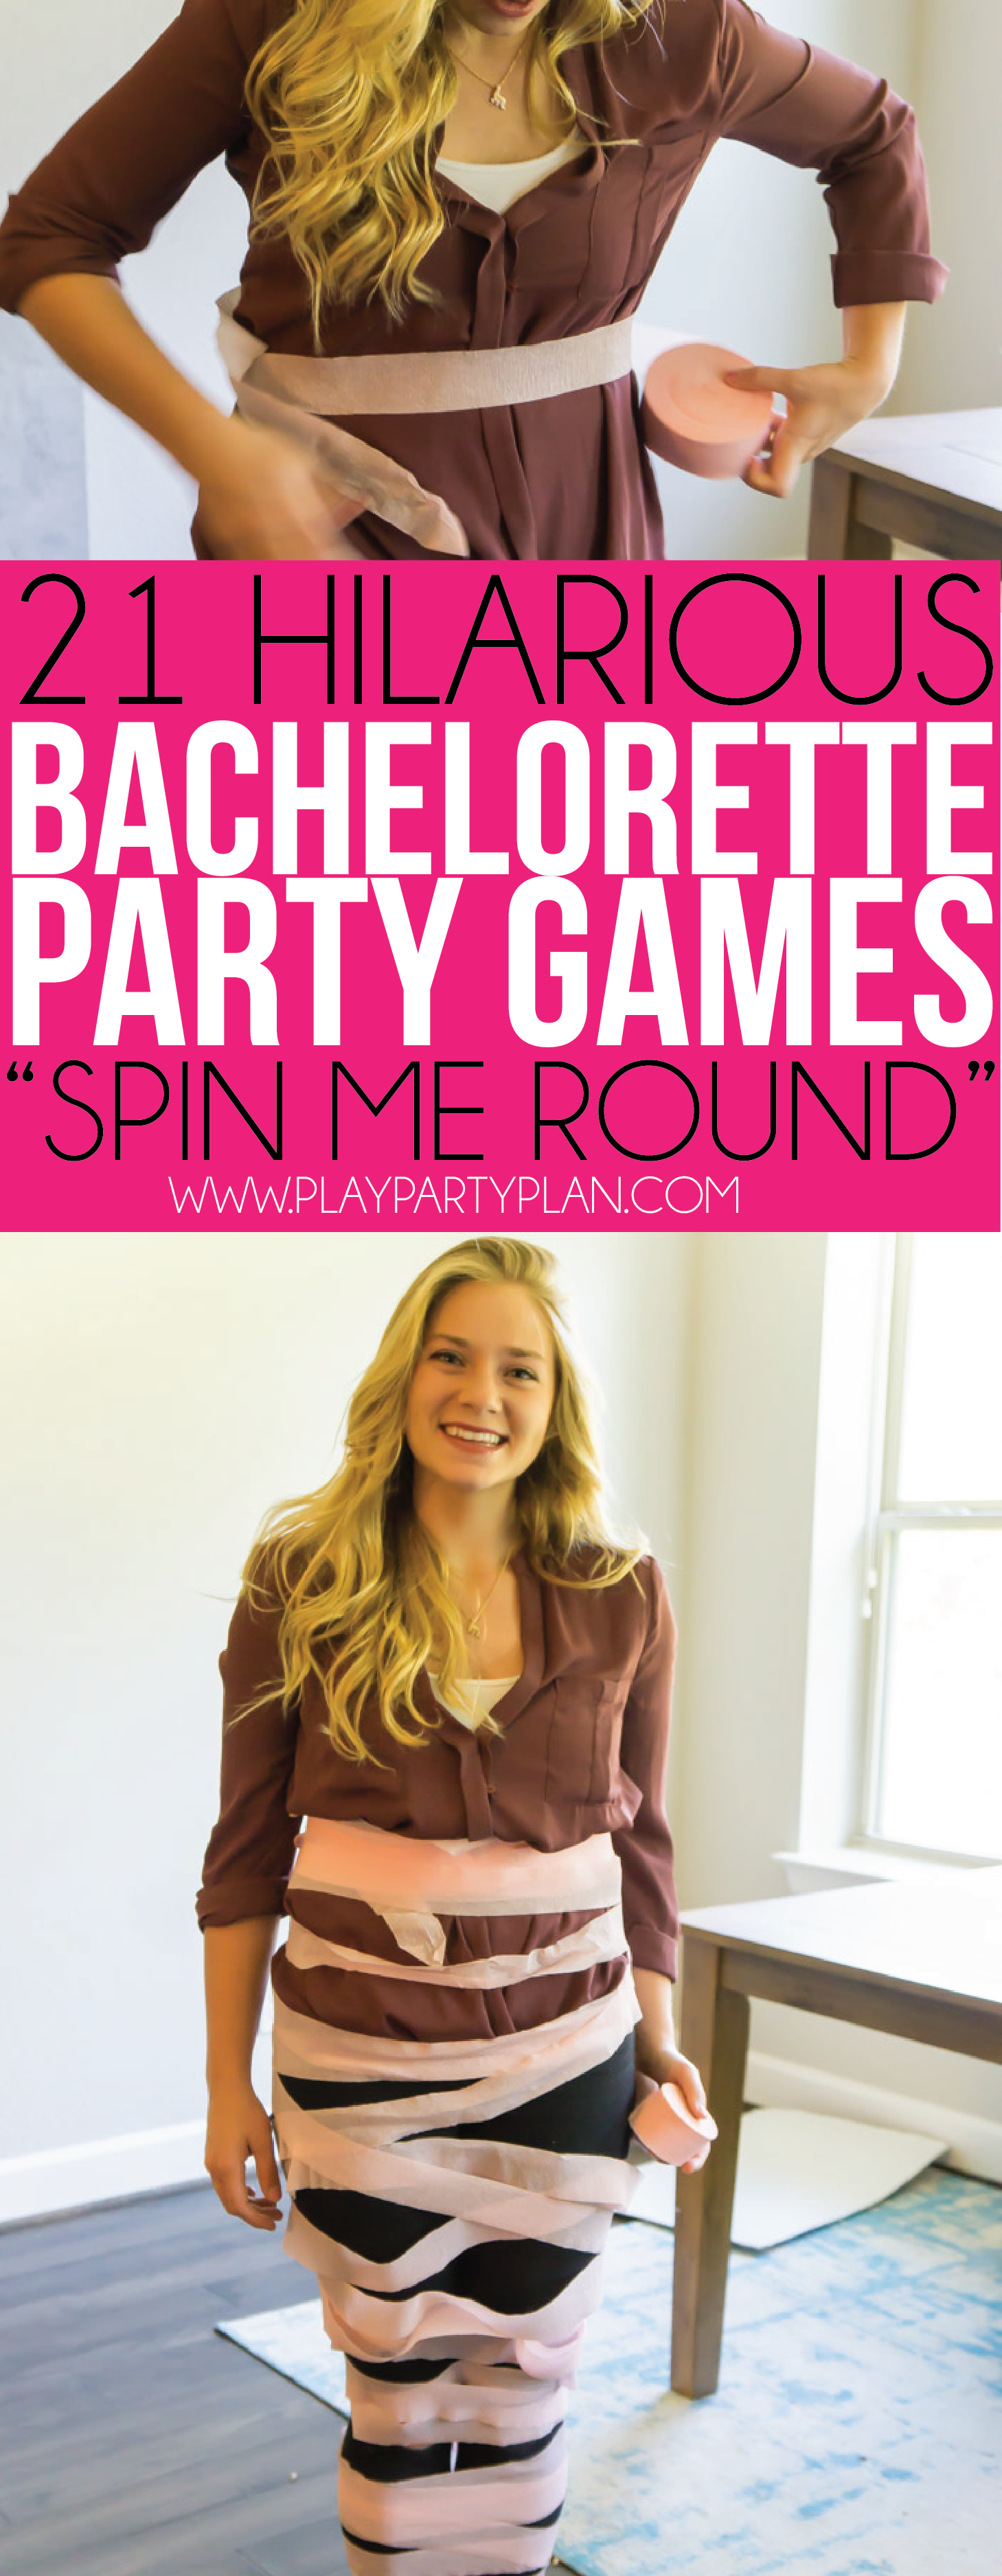 Spin me round and round in these fun bachelorette party games